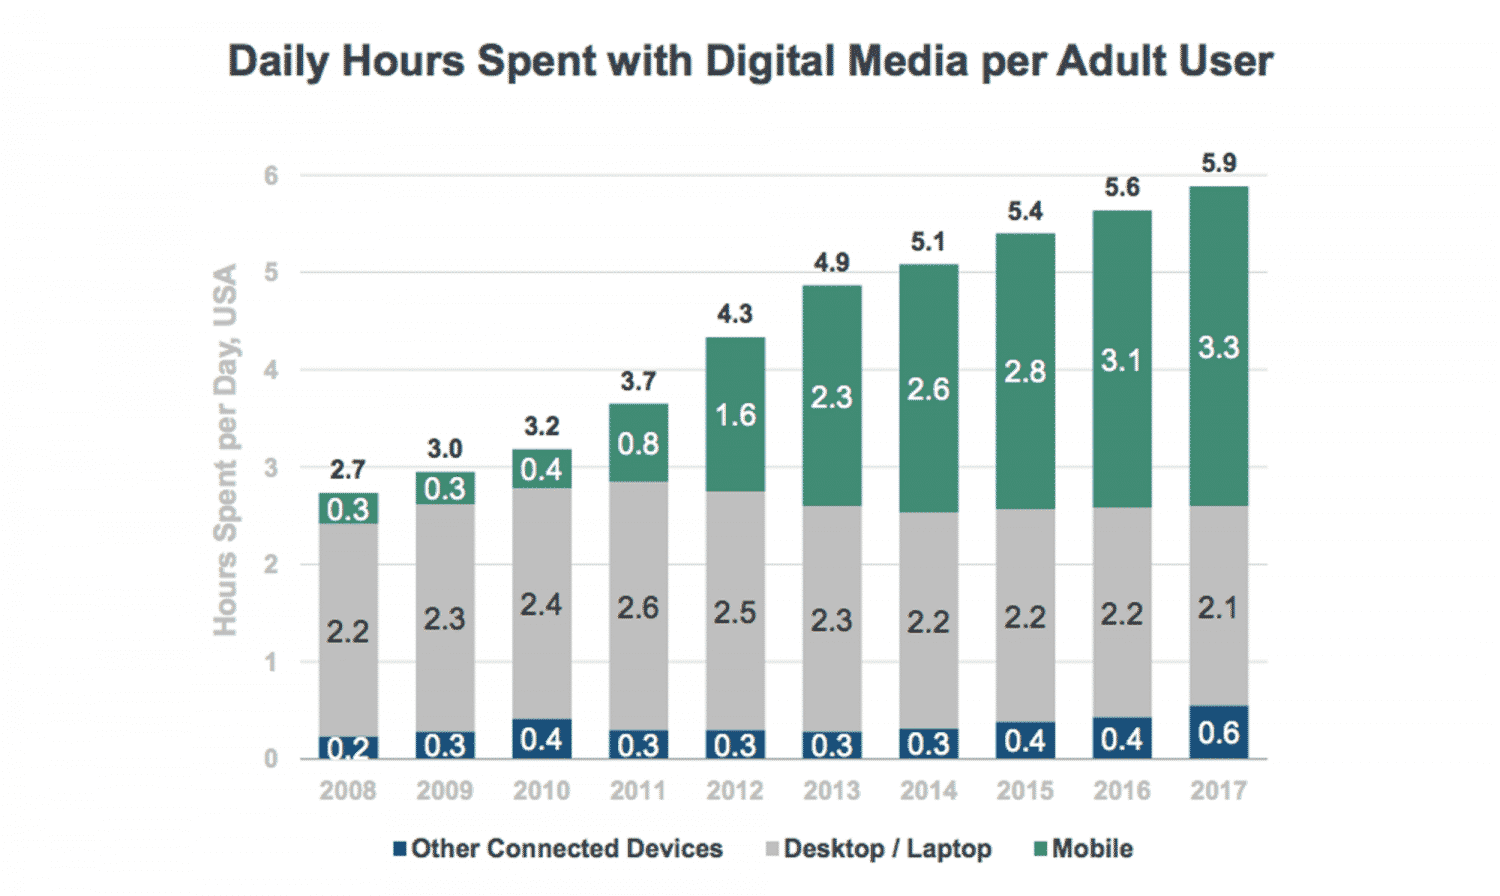 Daily Hours Spent on Digital Media